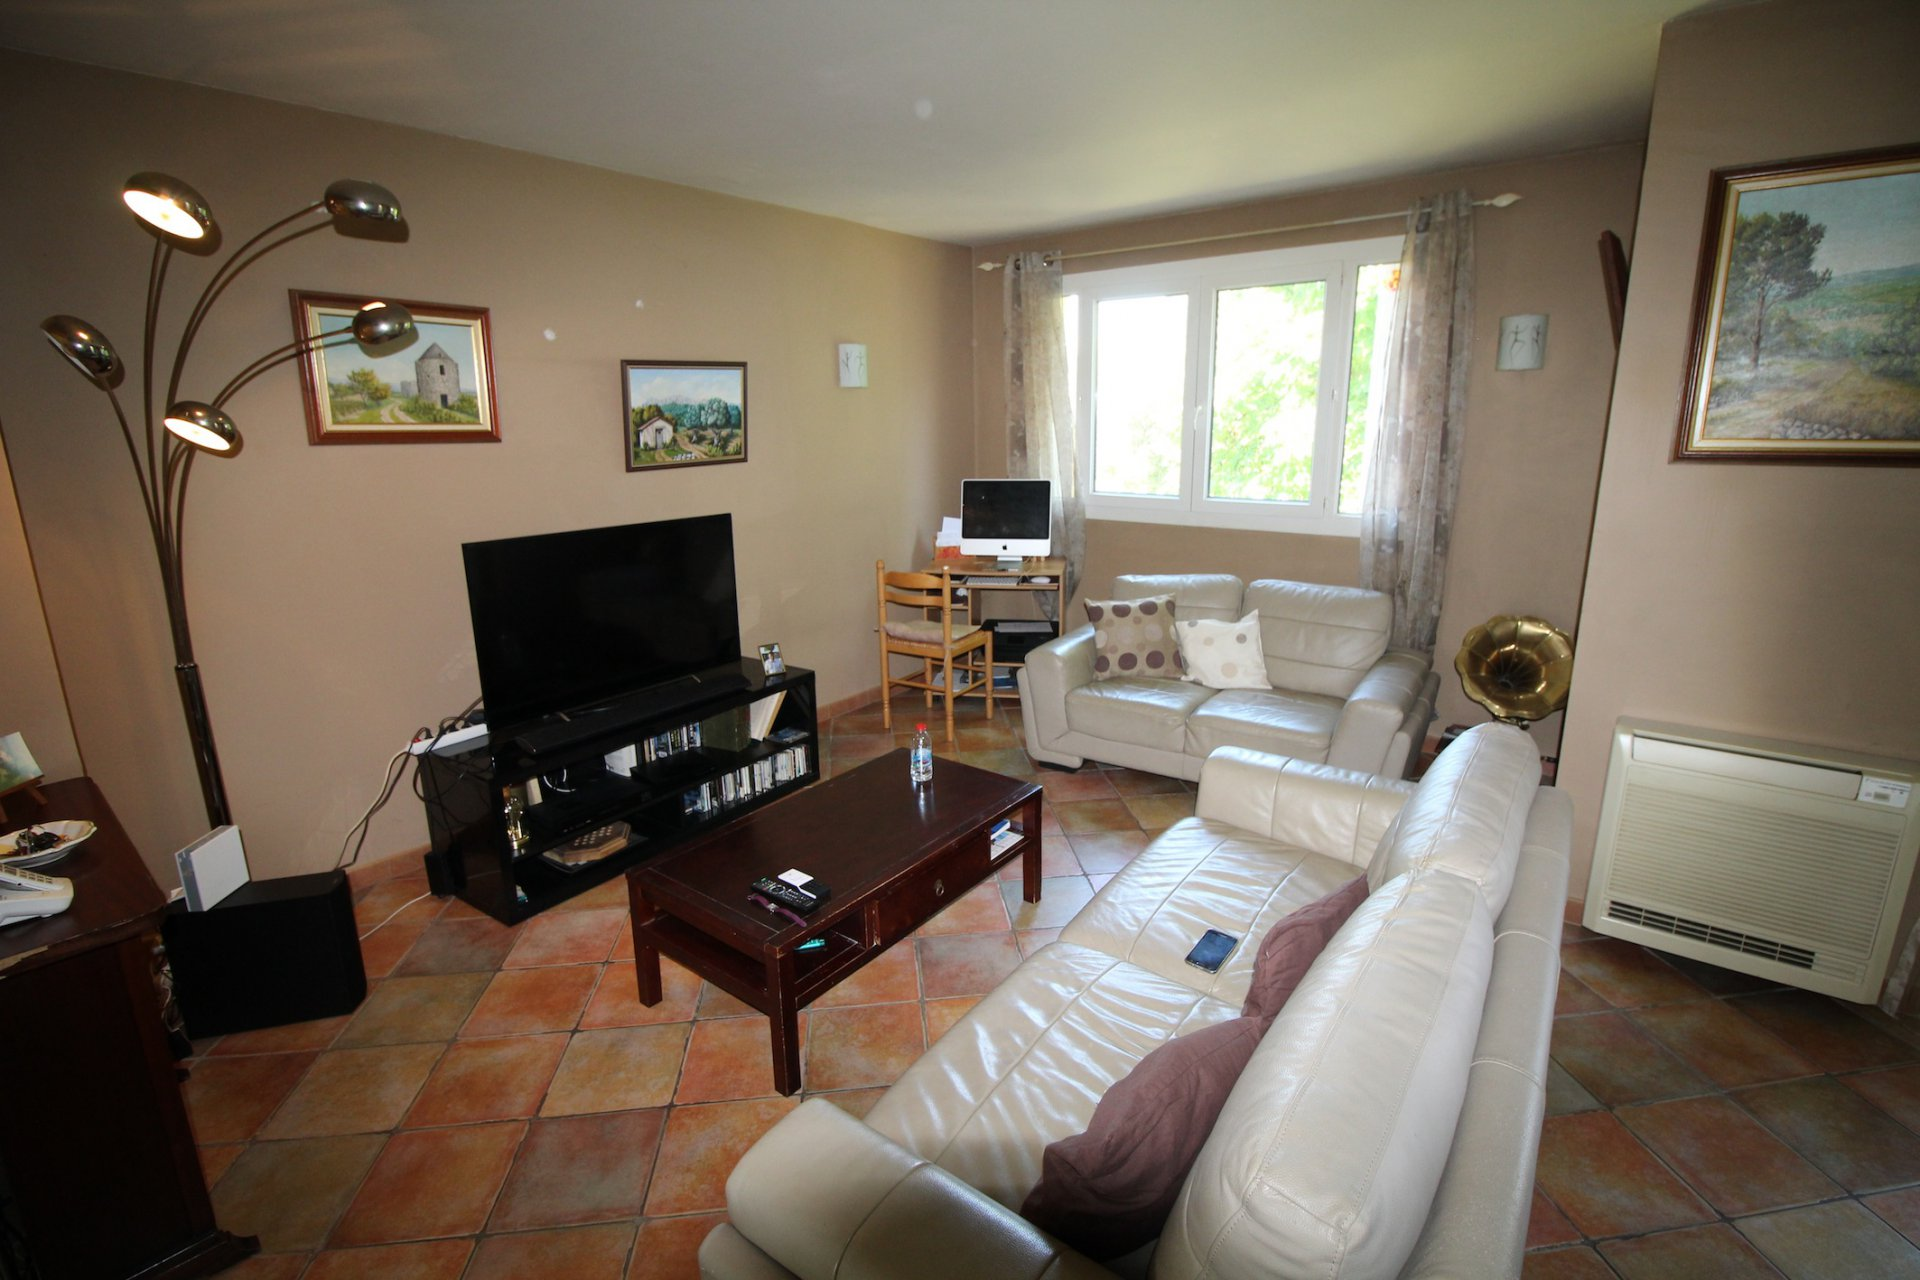 Brignoles, an apartment close to all amenities